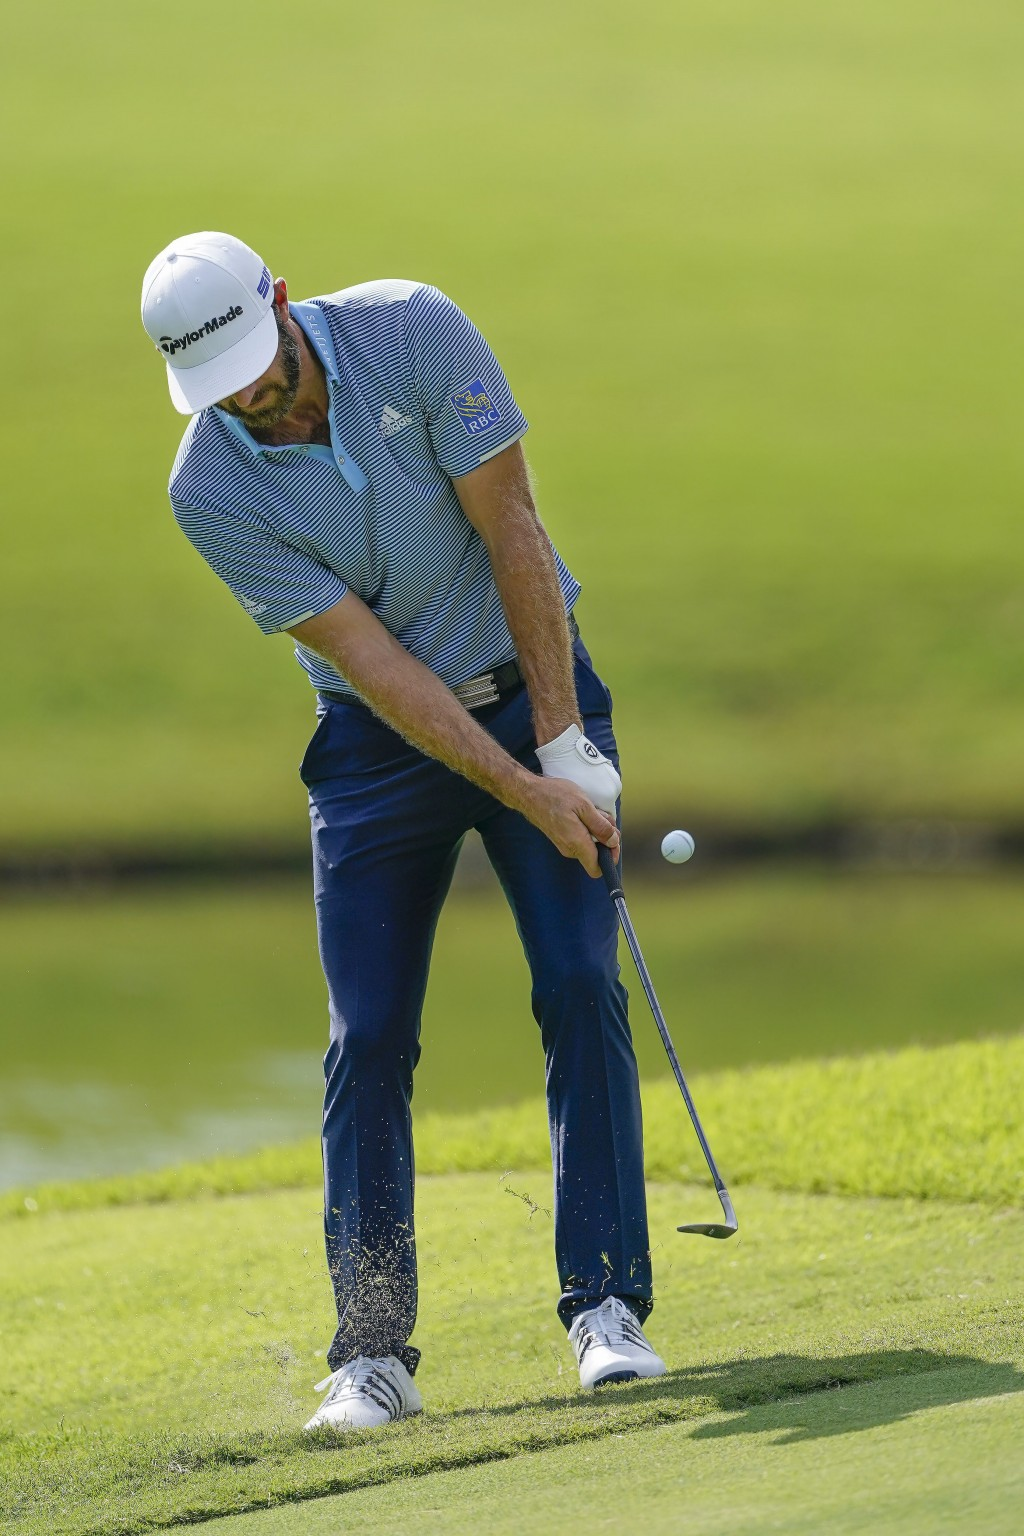 Dustin Johnson chips to the green on the 11th hole during the first round of the Tour Championship golf tournament at East Lake Golf Club in Atlanta, ...